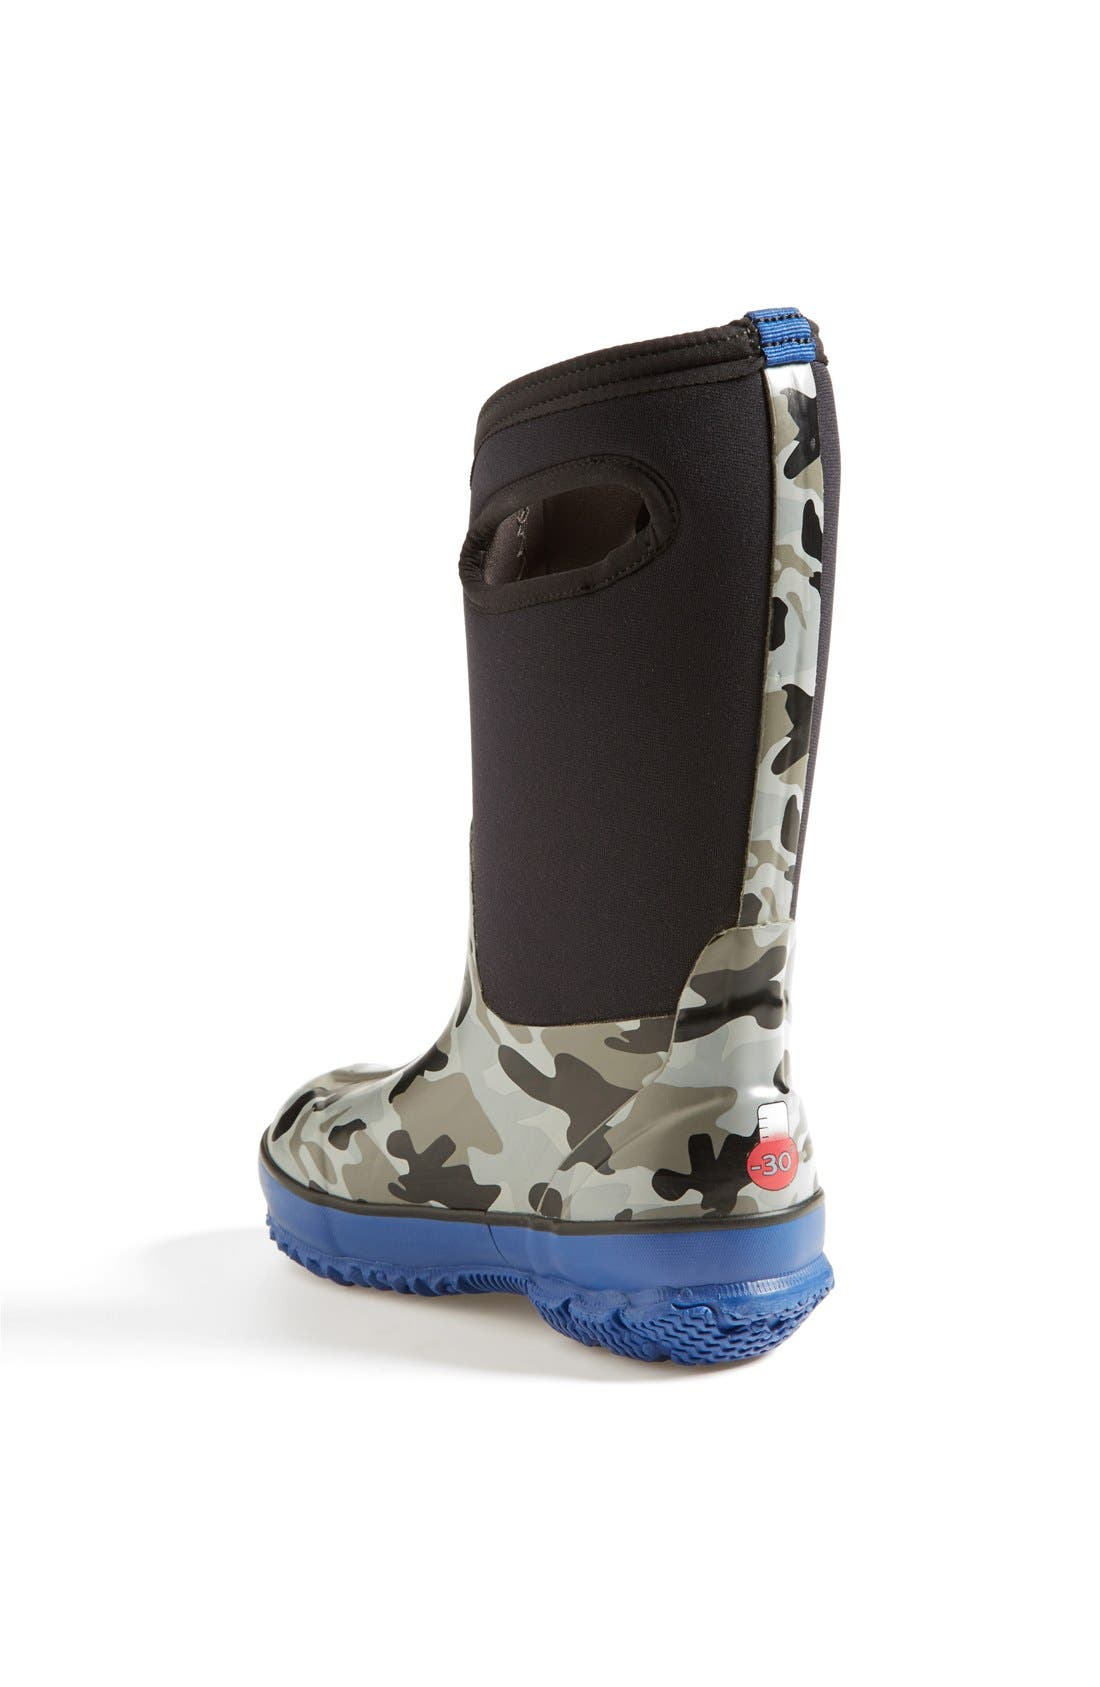 Classic Camo Insulated Waterproof Boot,                             Alternate thumbnail 2, color,                             001